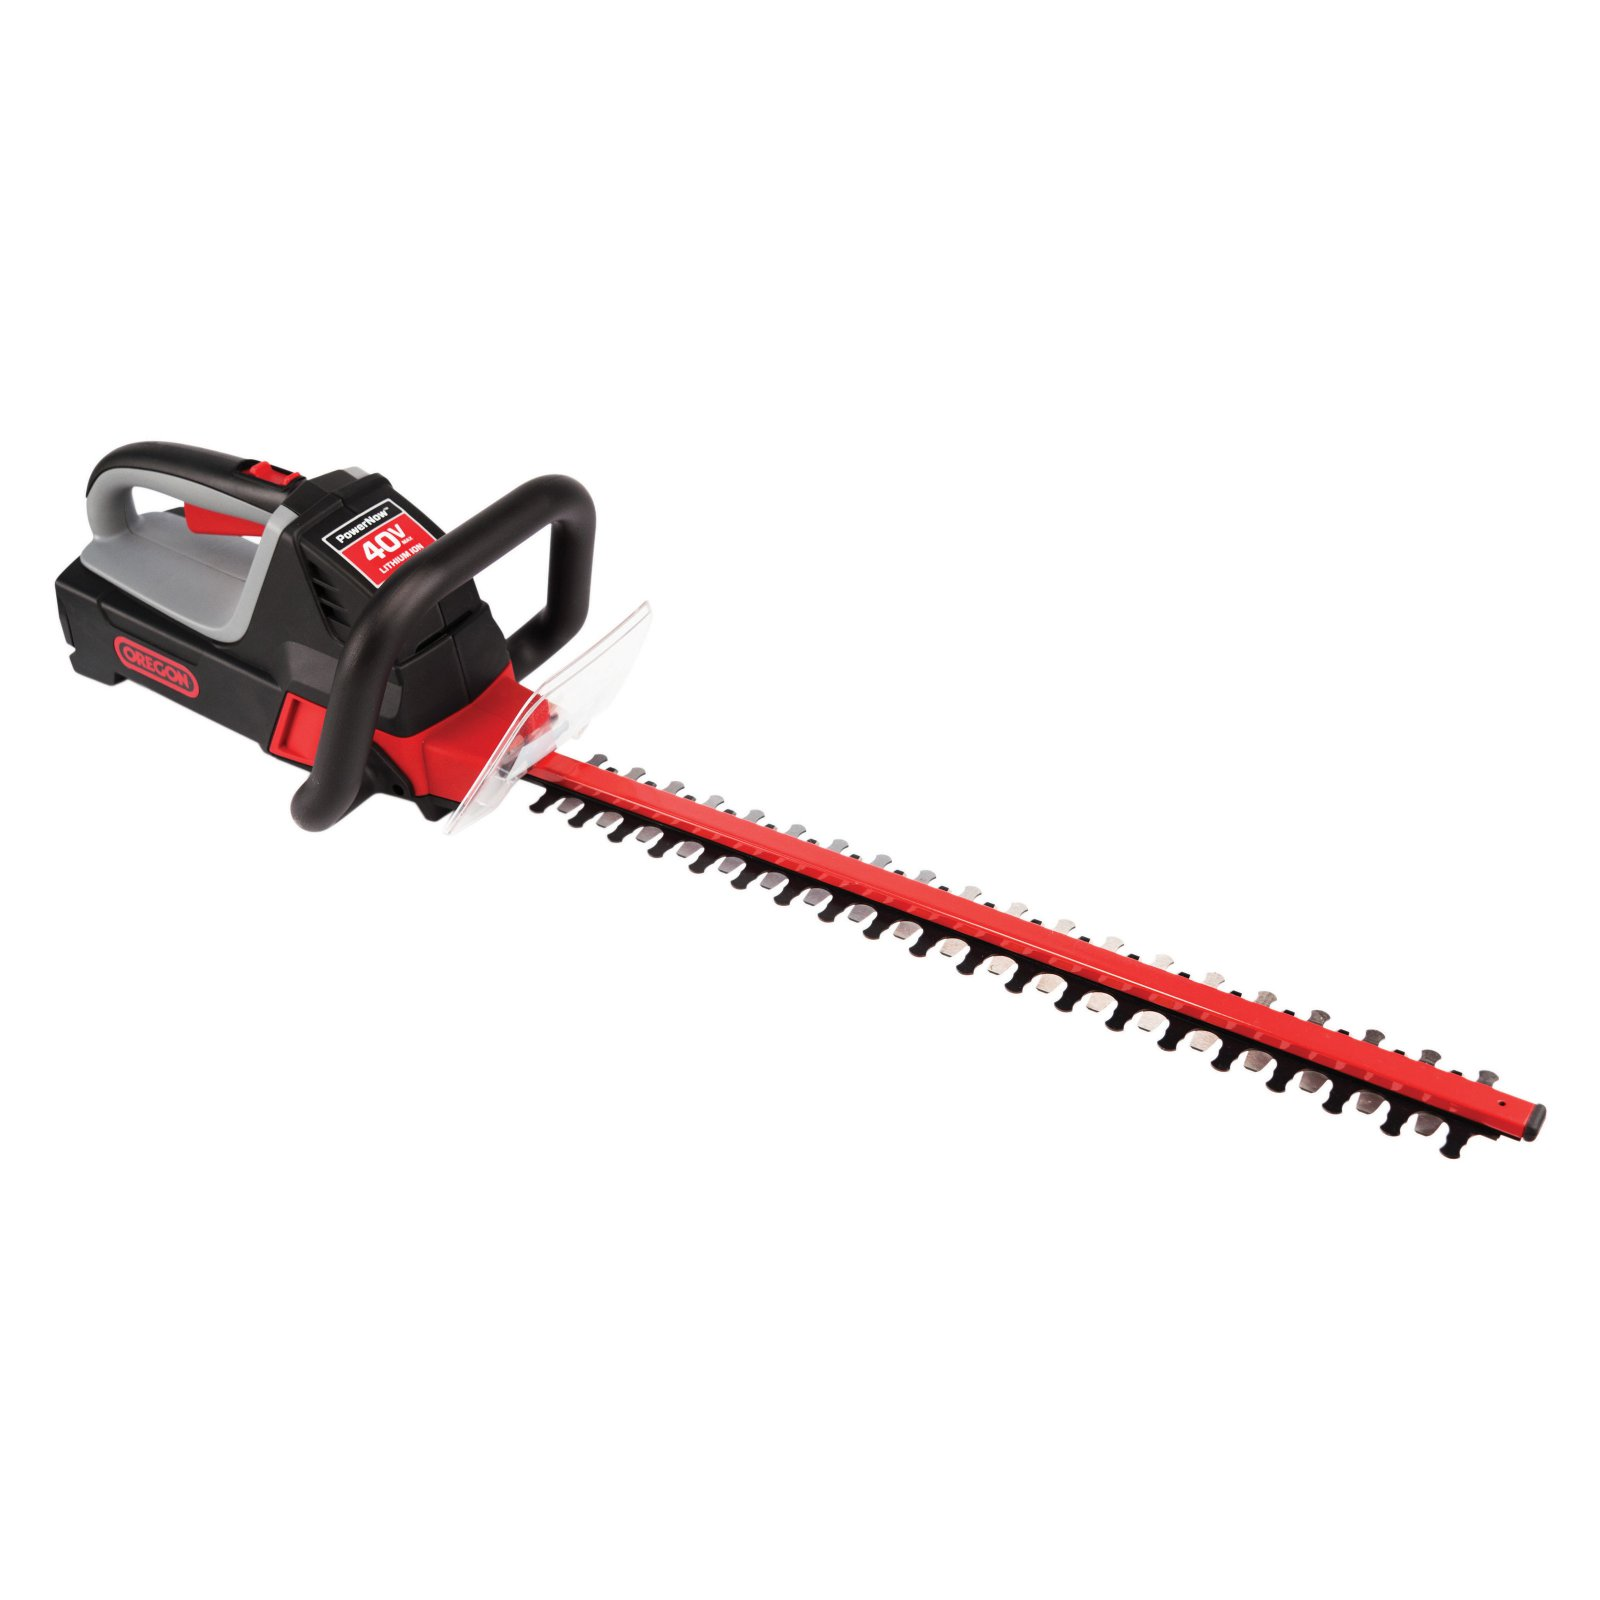 Oregon Cordless 40 Volt Max Hedge Trimmer Kit with 2.4 Ah Battery and Charger by Oregon Chain